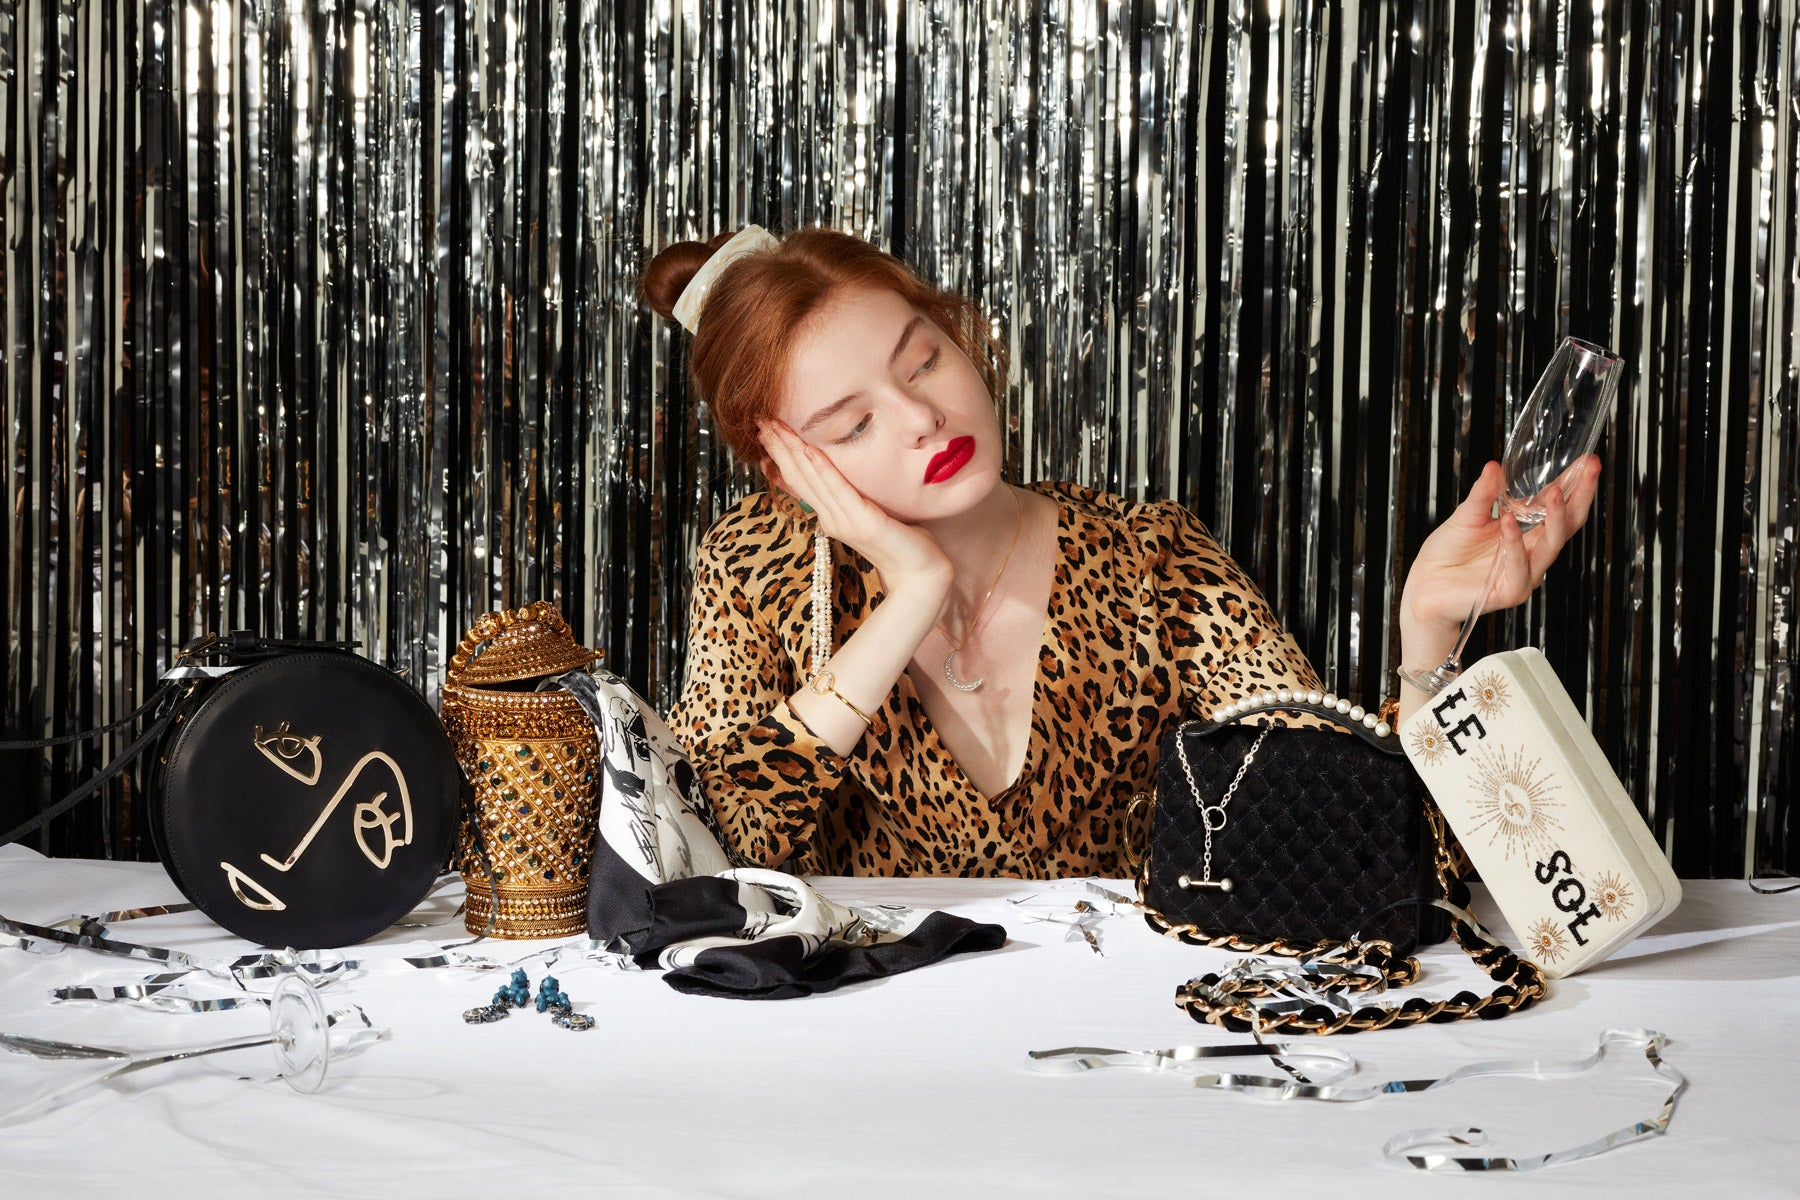 The best upscale Christmas party accessories gifts for her of the season new years eve Pheonix Magazine features Mae Cassidy Rekha Reflect Bracelet cgold sparkly clutch bag November danish electro pop queen MØ Razorlight autumn fashion shopping Aspinal of London black & white print scarf leopard print snimal print Frame dress France Luxe Caramel Horn hair clip, Magda Butrym pearl drop Earrings Apples & Figs moon Necklace gold Tommy Hilfiger bangle Photographer Tom Hartford Model Alyda at Milk Management Accessories Editor Lucy Kebbell Hair Stylist Reve Ryu Bumble & Bumble UK MUA & Nails Anna Payne Bobbi Brown